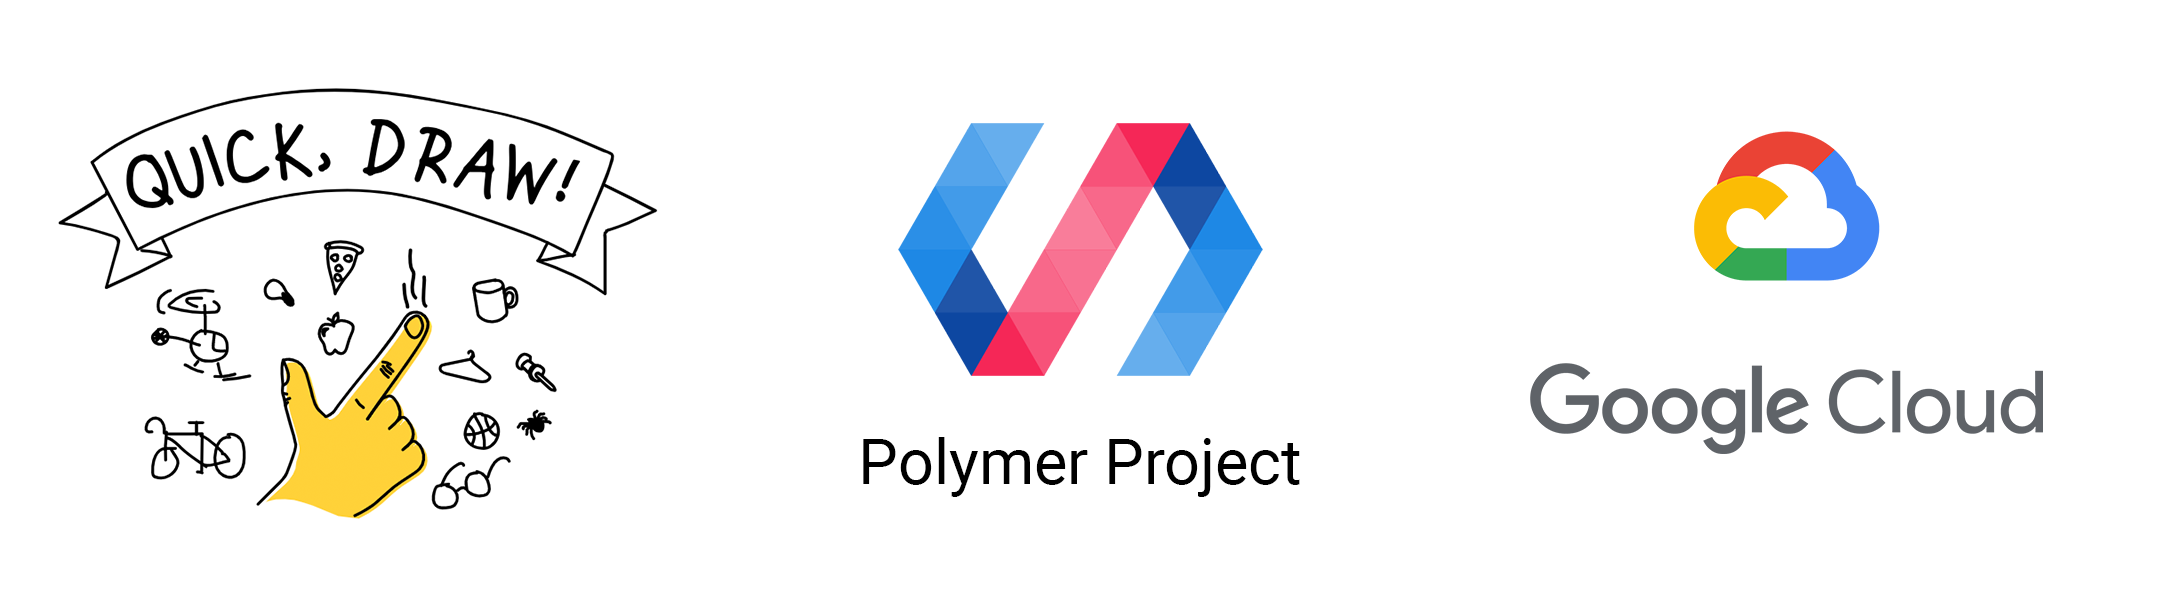 logos for Quick, Draw! and the Polymer Project and Google Cloud